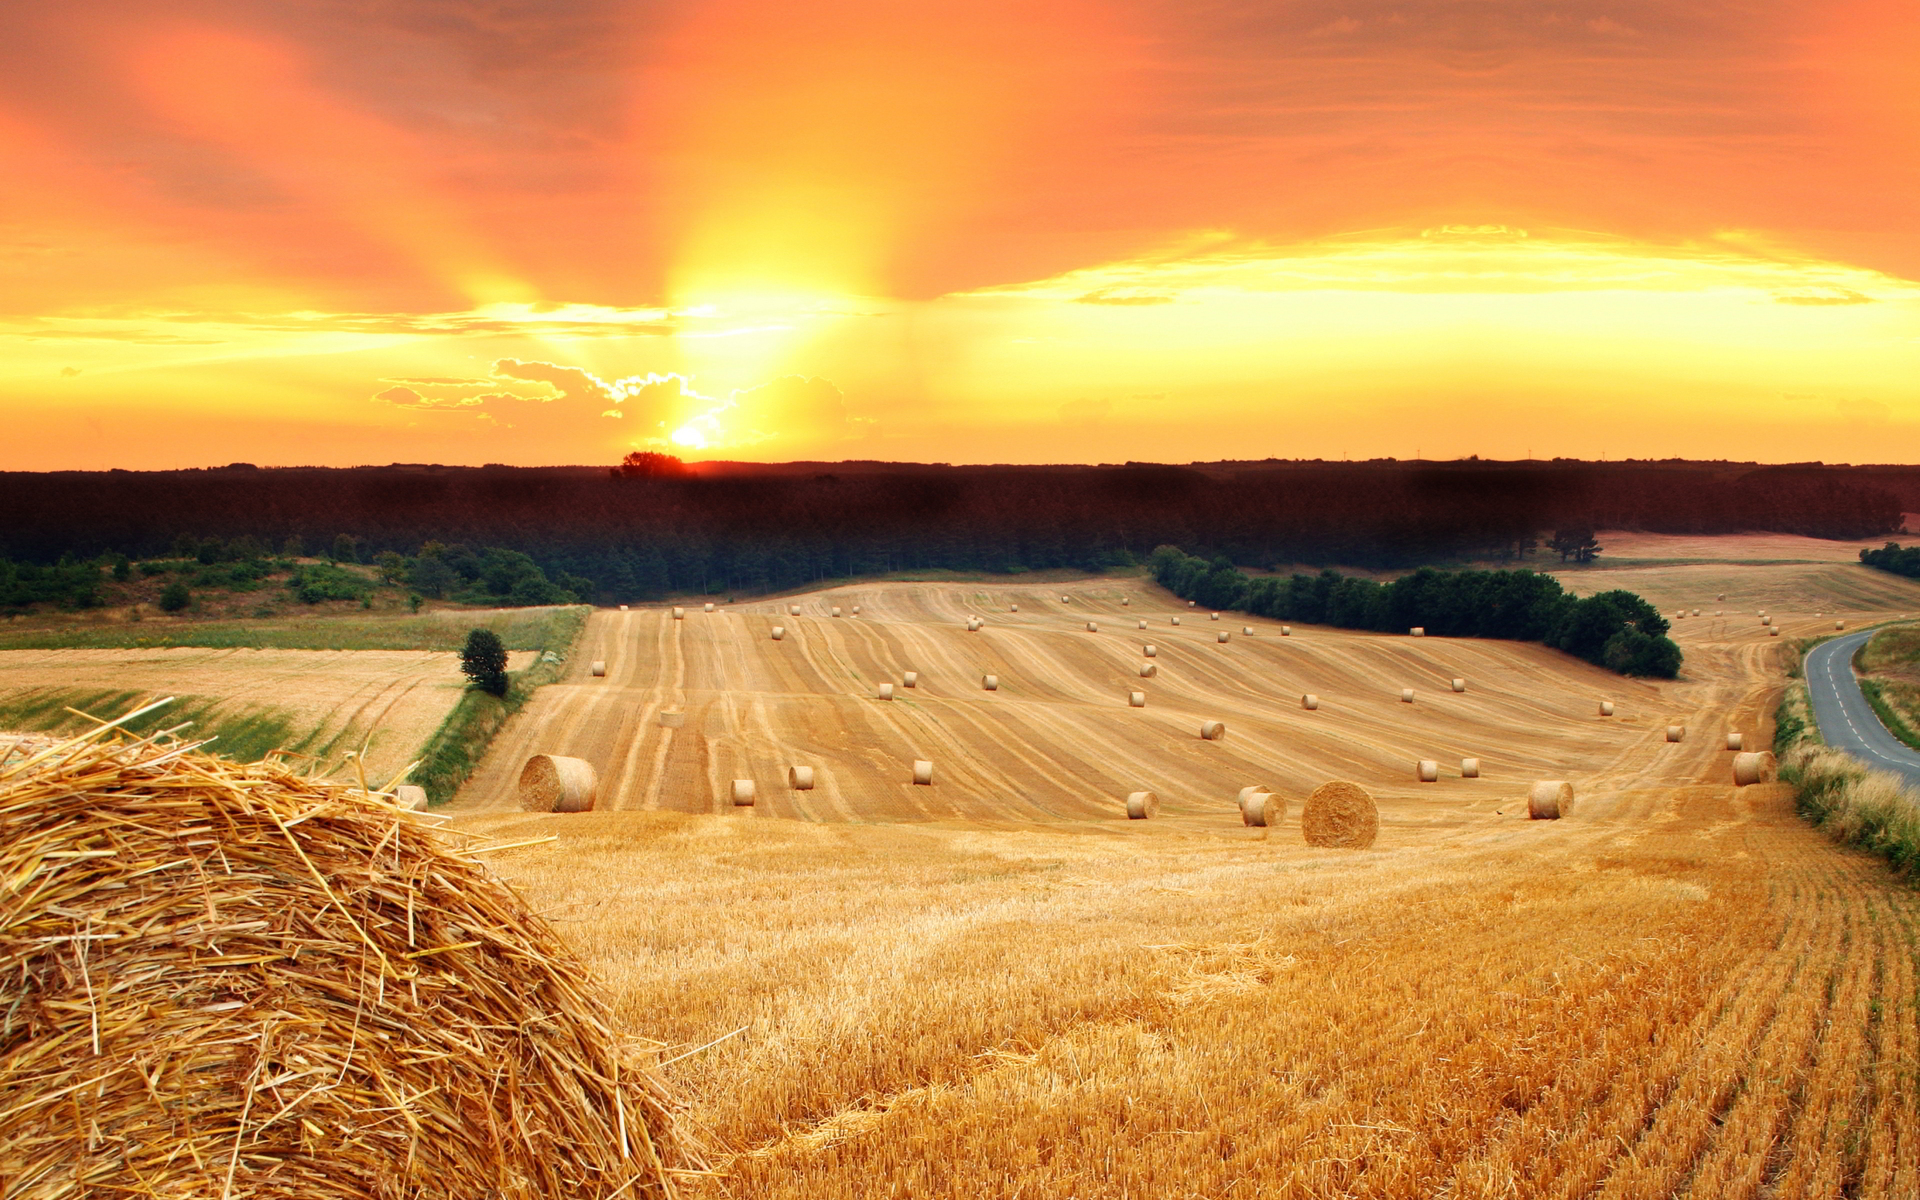 sunset field crops images